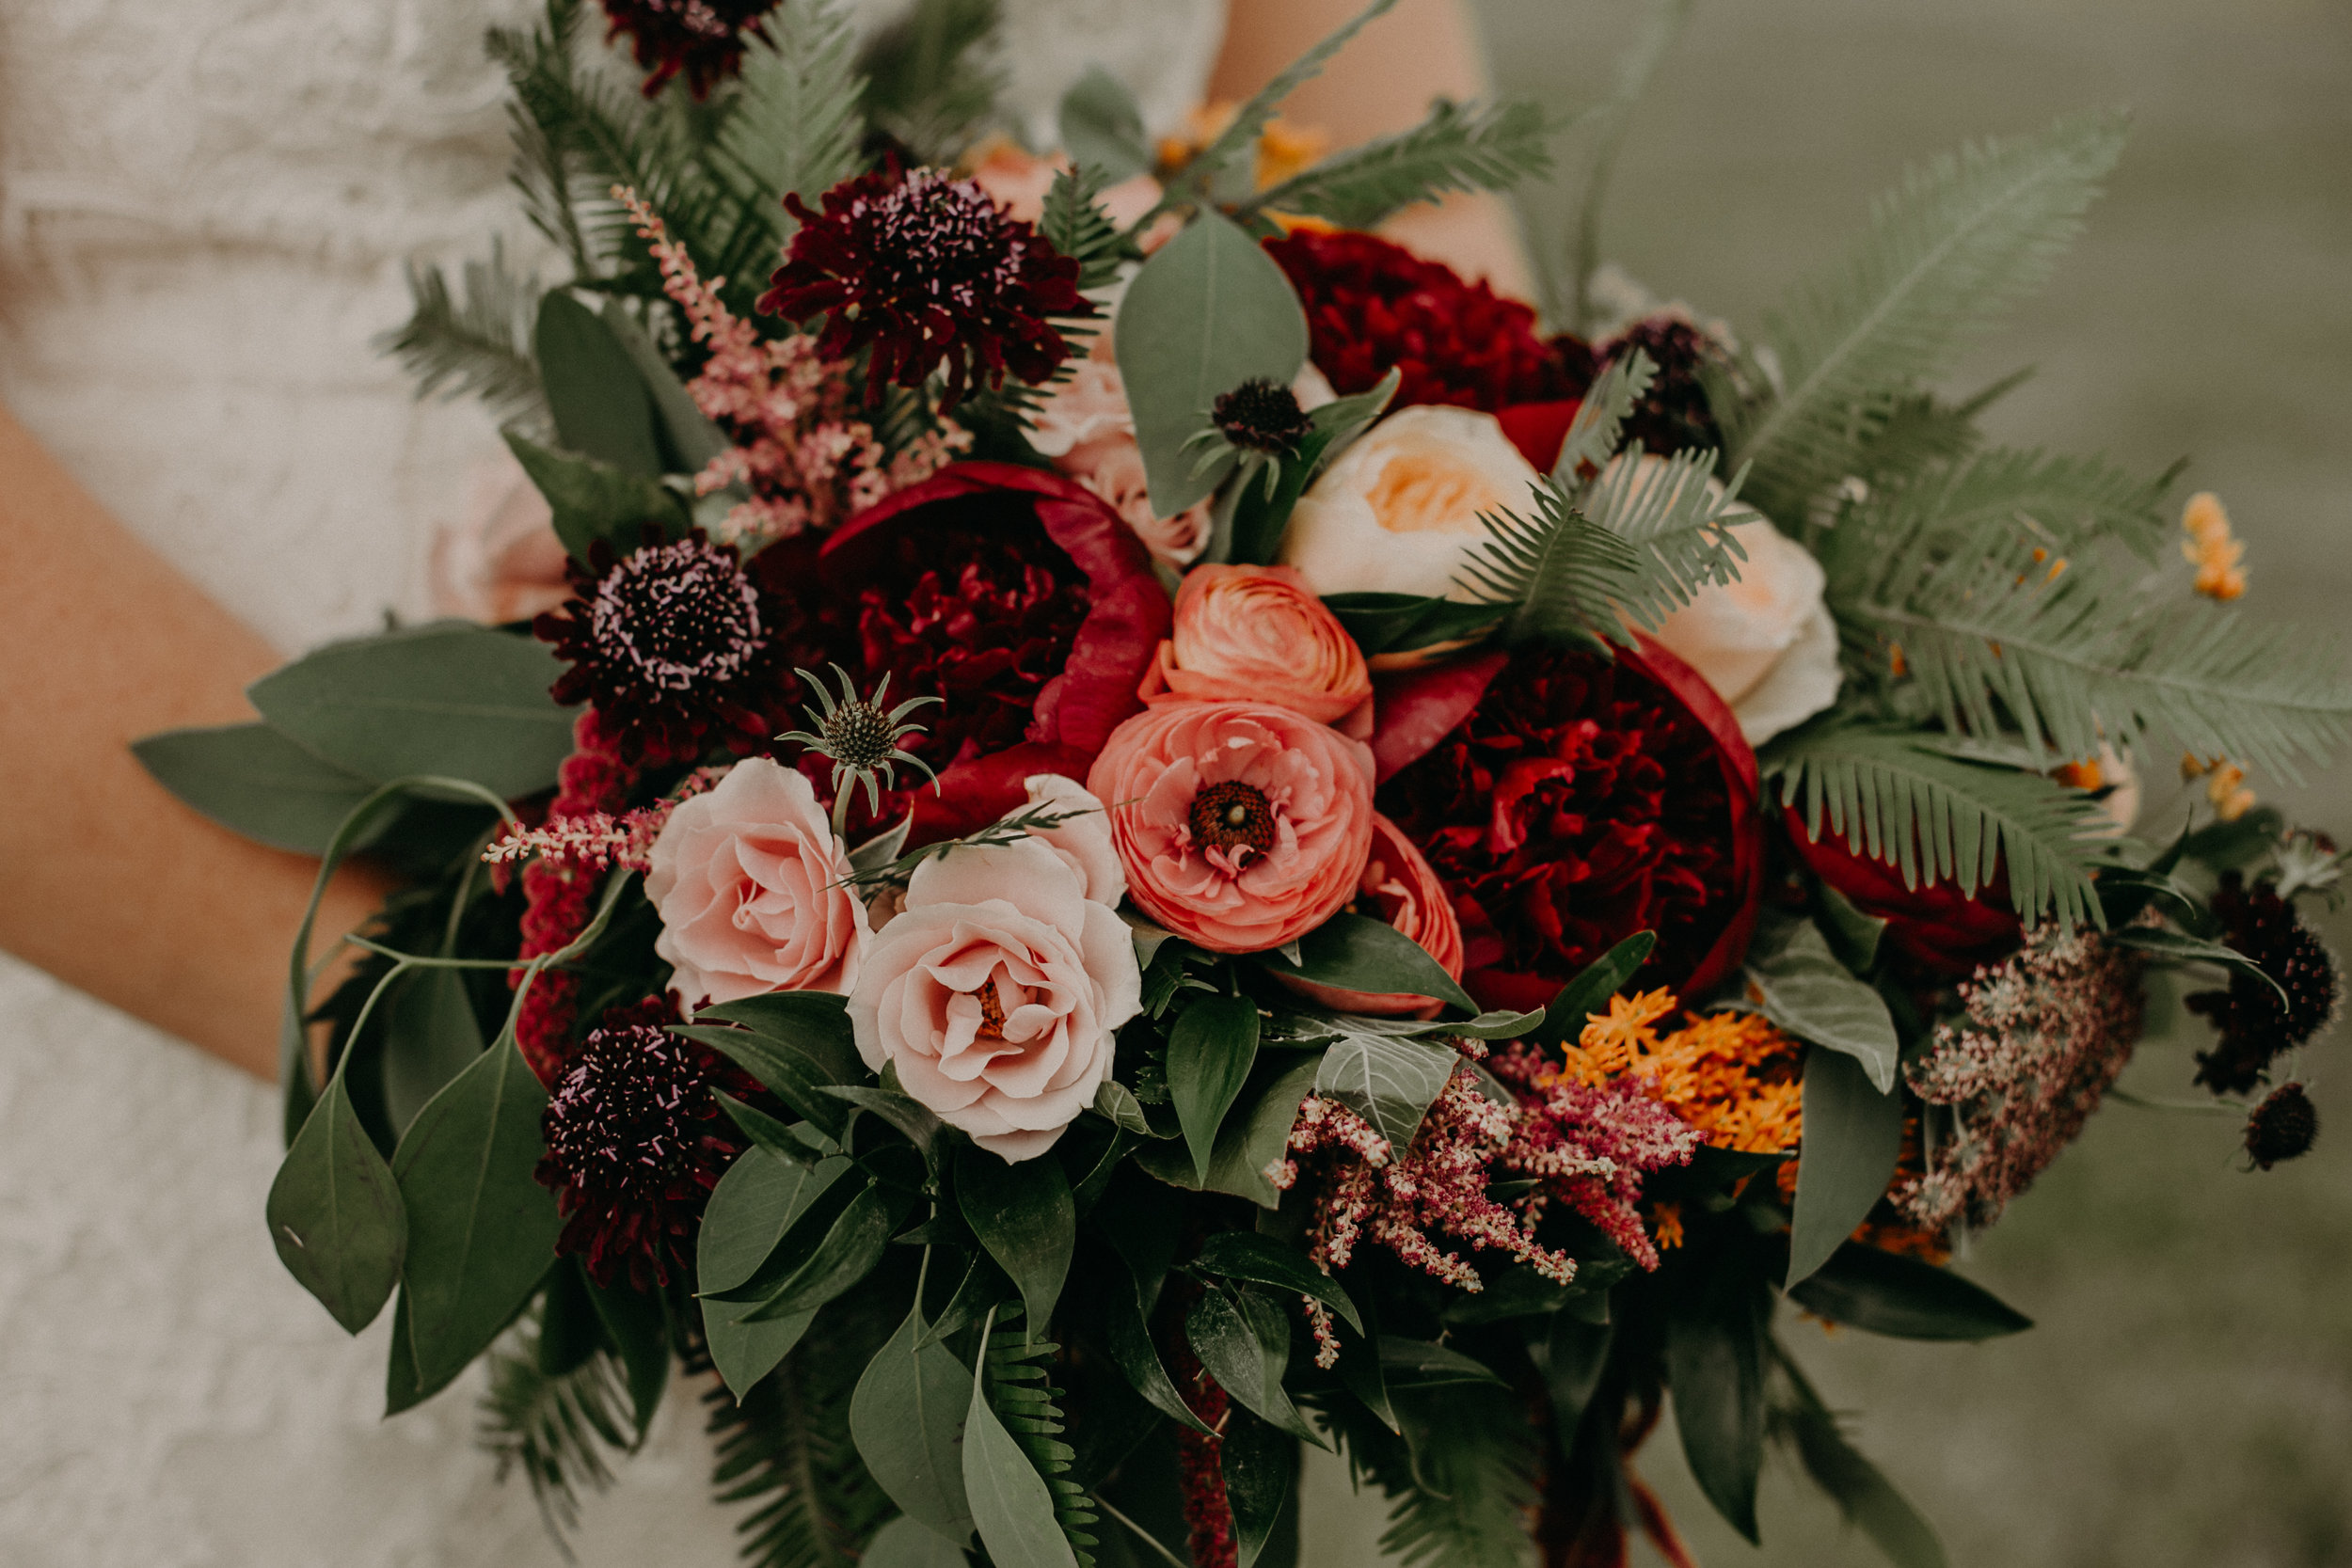 MoodyHues Floral wedding bouquet photographed by Andrea Wagner Photography